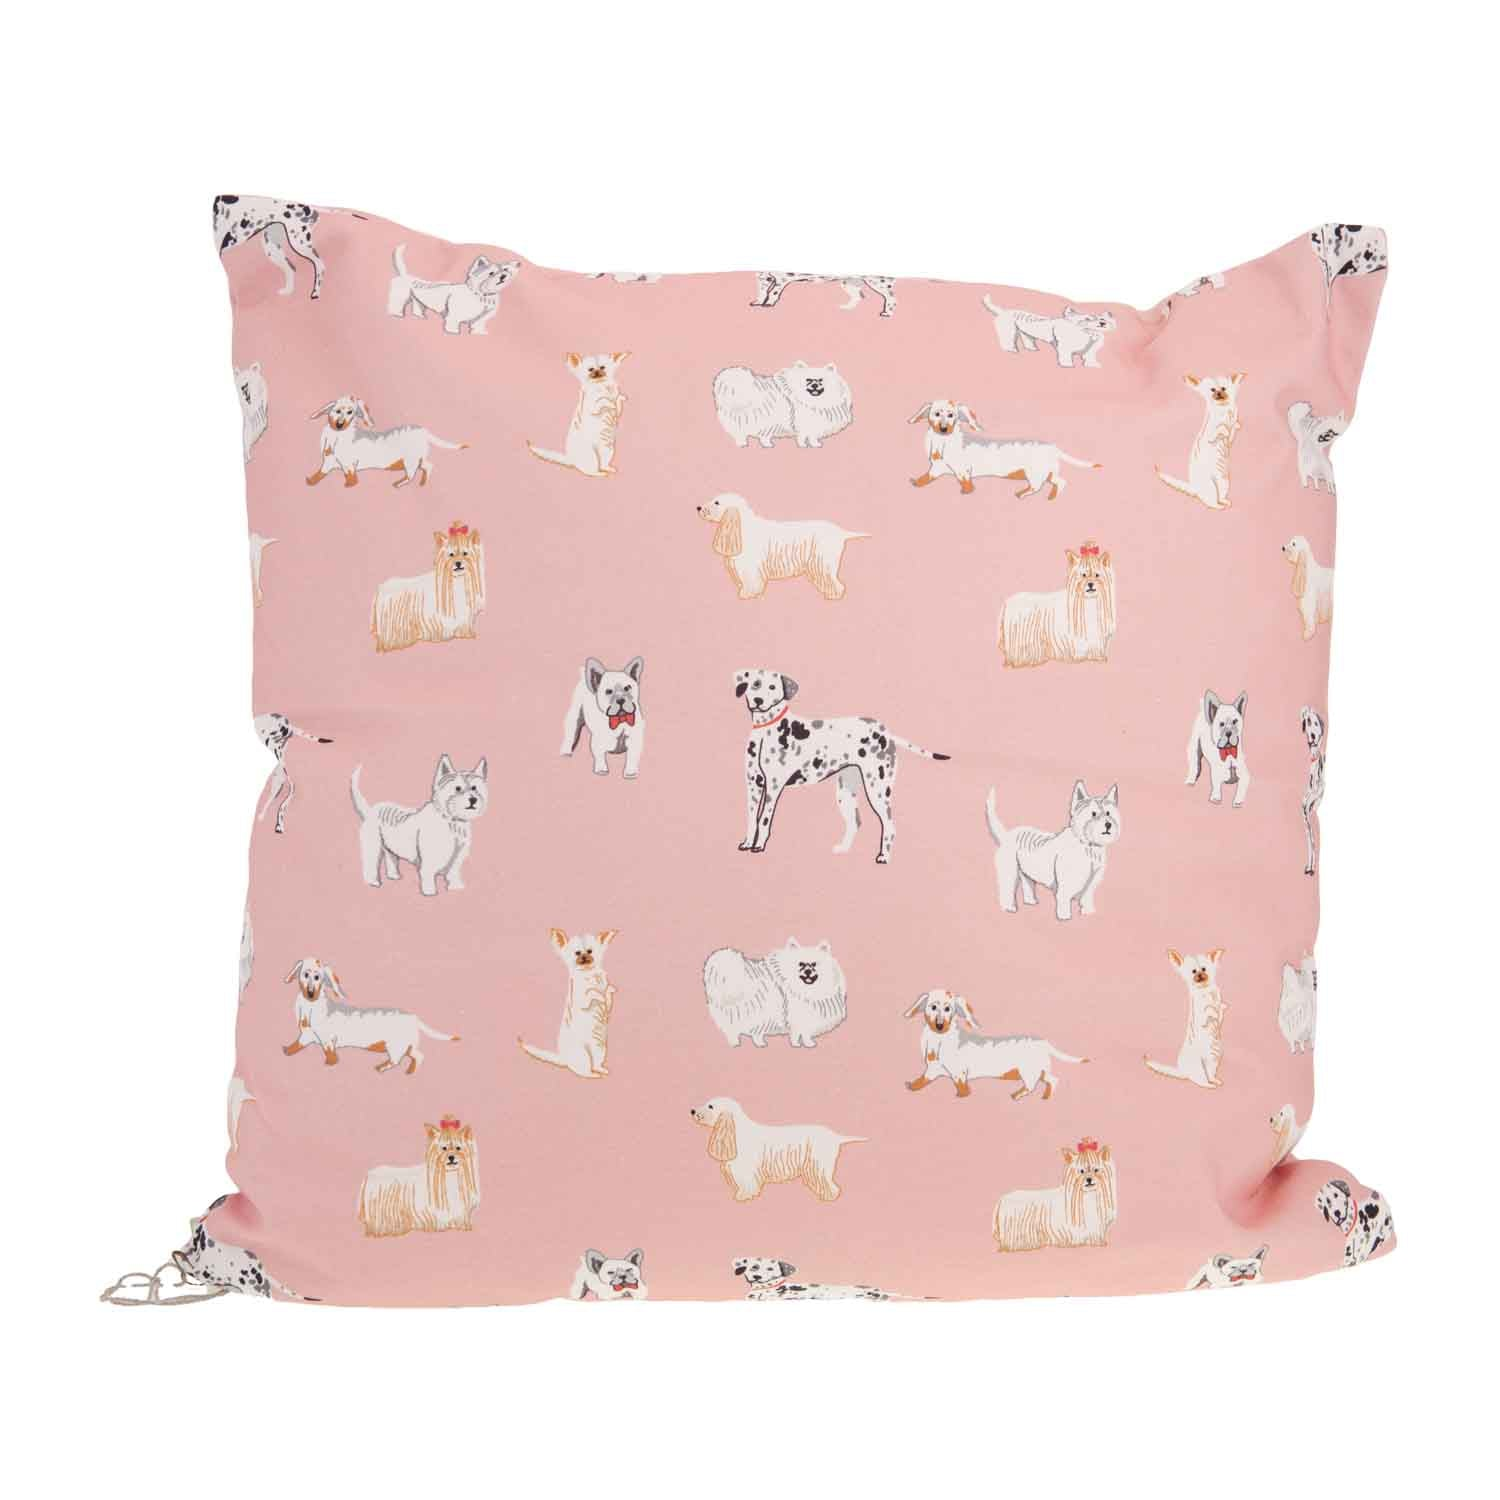 Dog Krazy Gifts - Watercolour Dogs Cushion, part of the Lisa Angel range available from DogKrazyGifts.co.uk